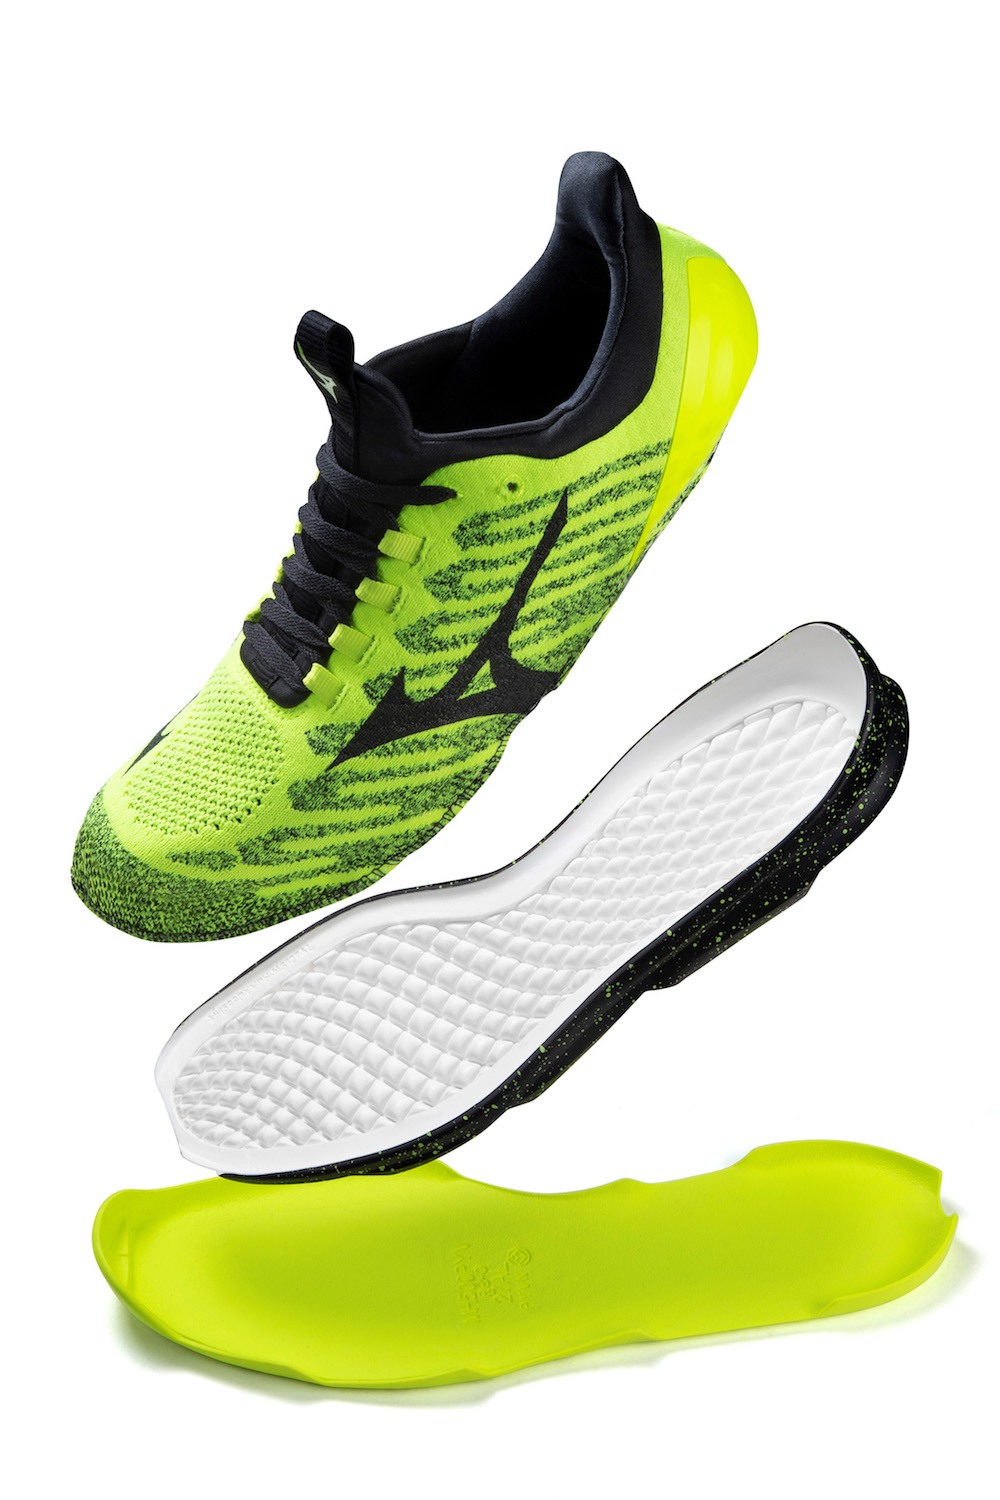 BASF and Mizuno have combined their technical footwear knowledge on a performance capsule based on Elastopan polyurethane.